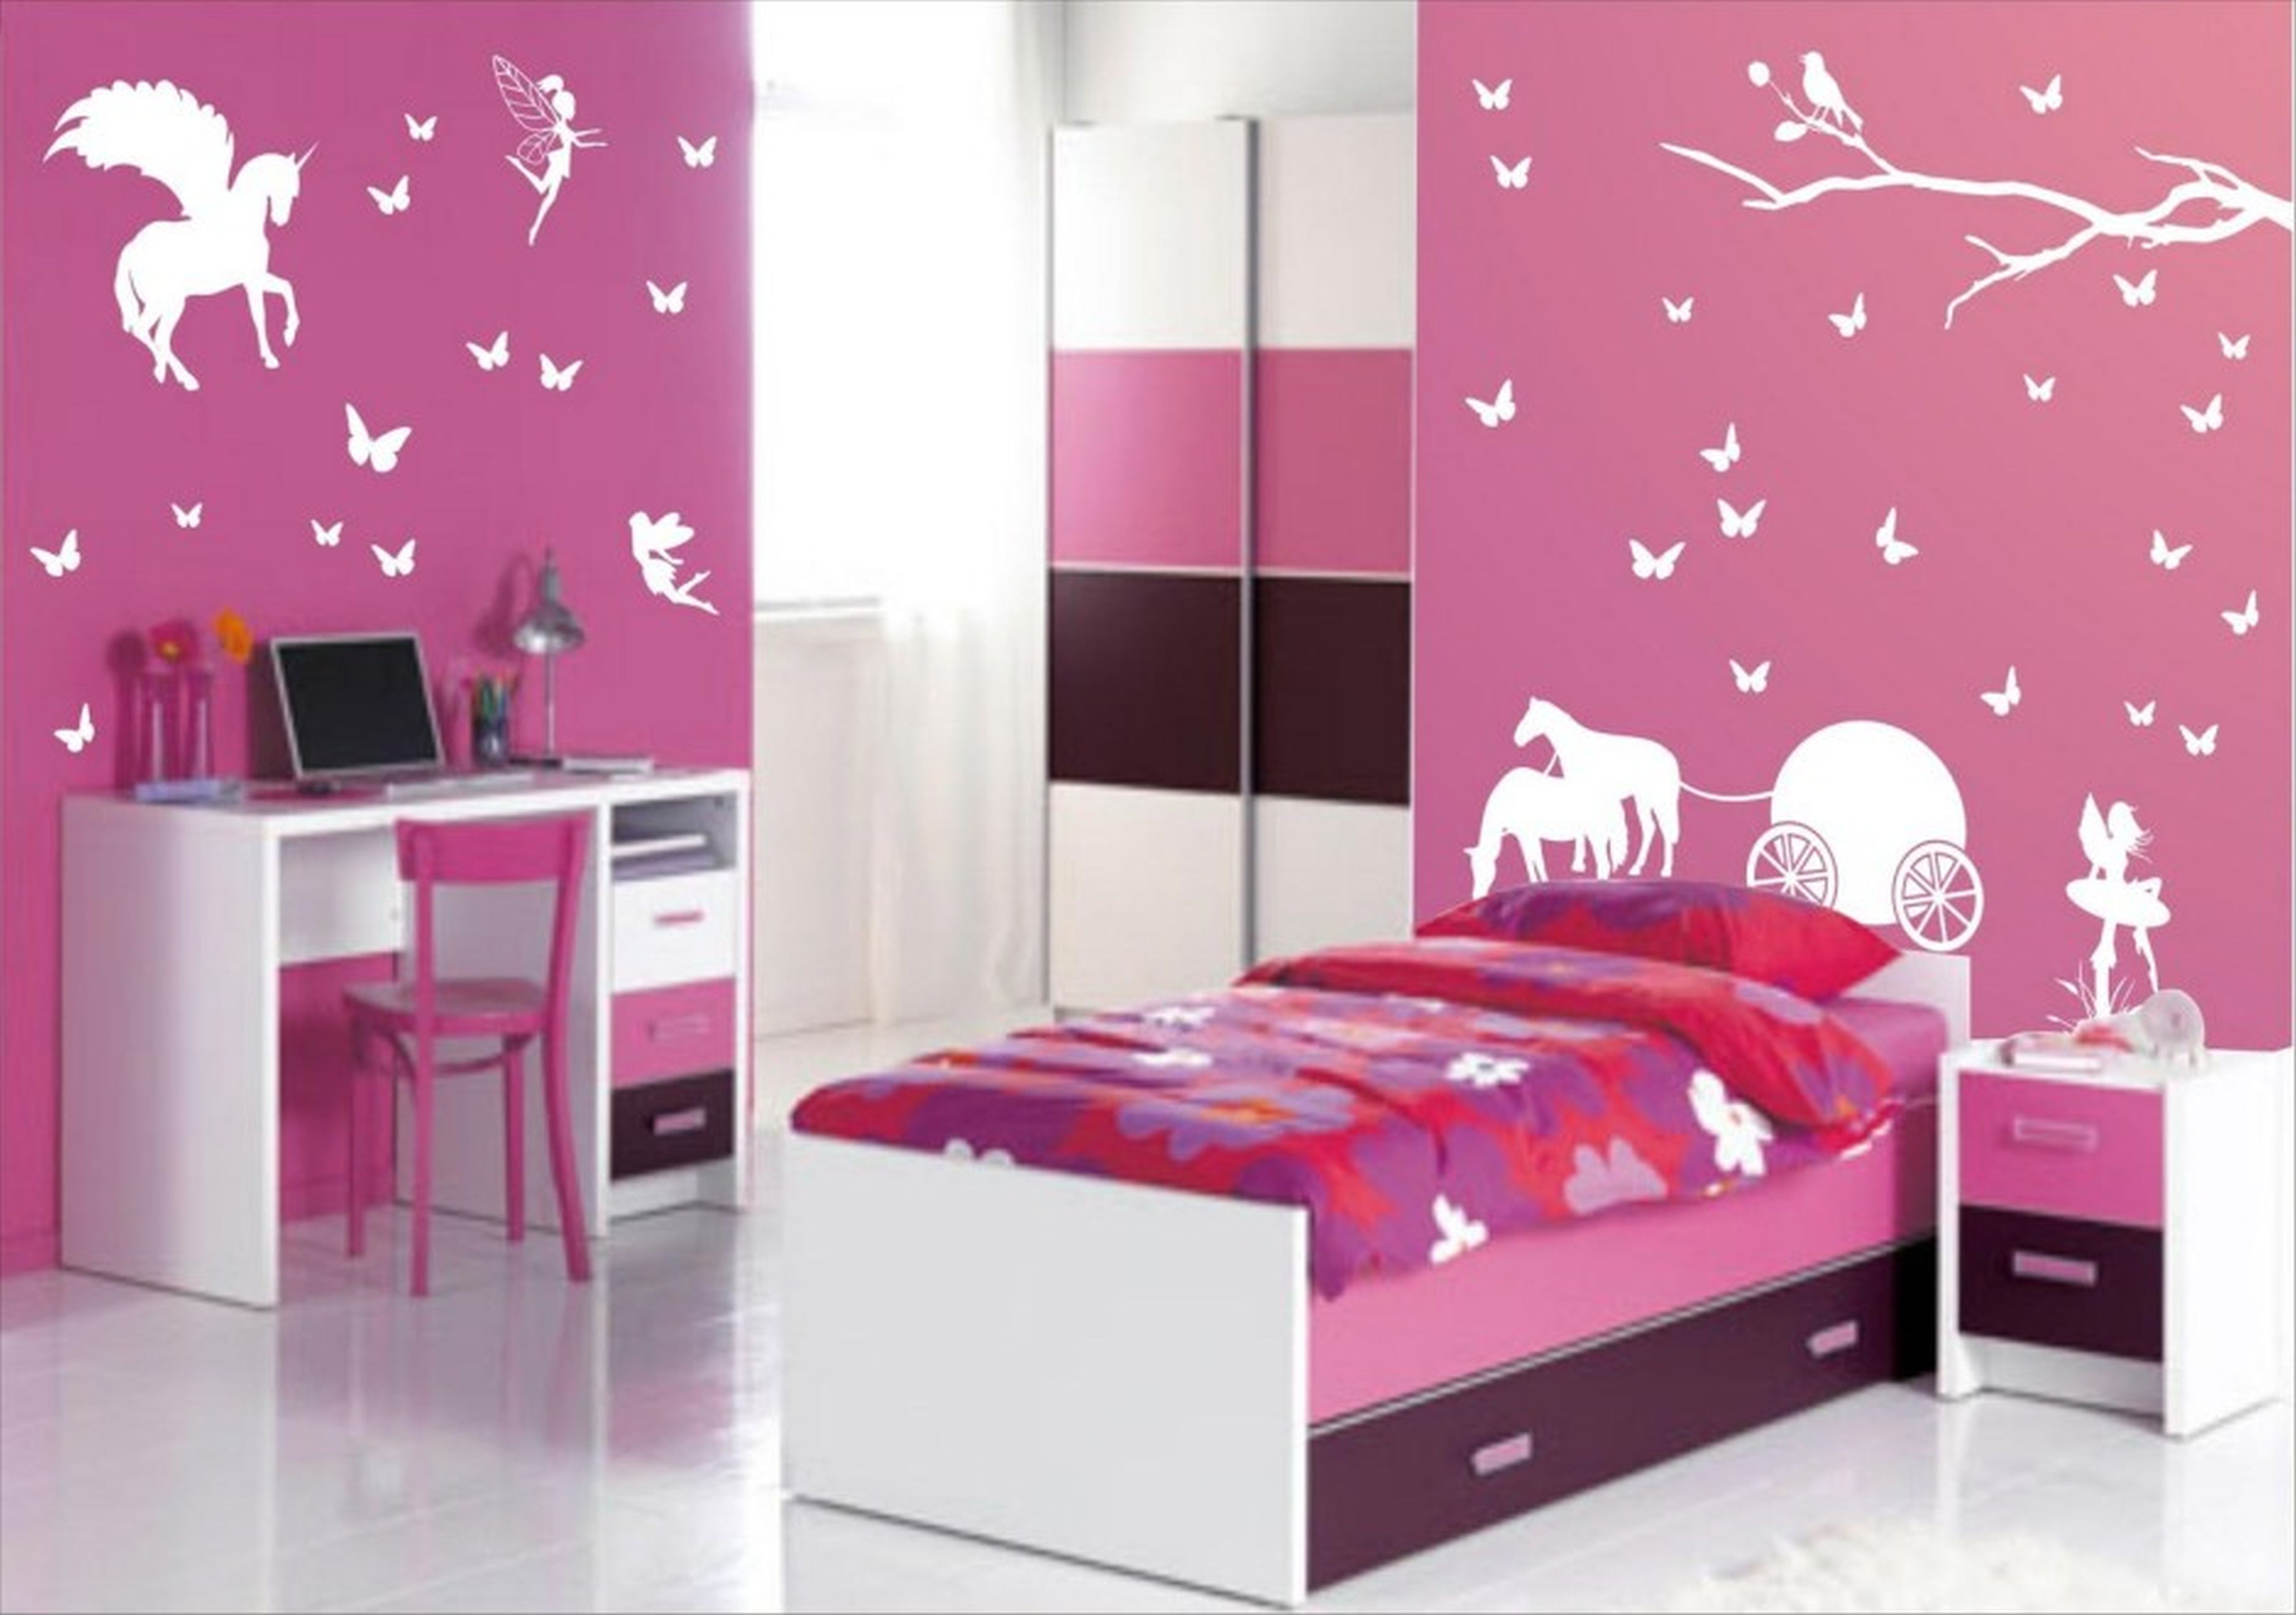 Wall Painting For Girls at PaintingValley.com | Explore ...